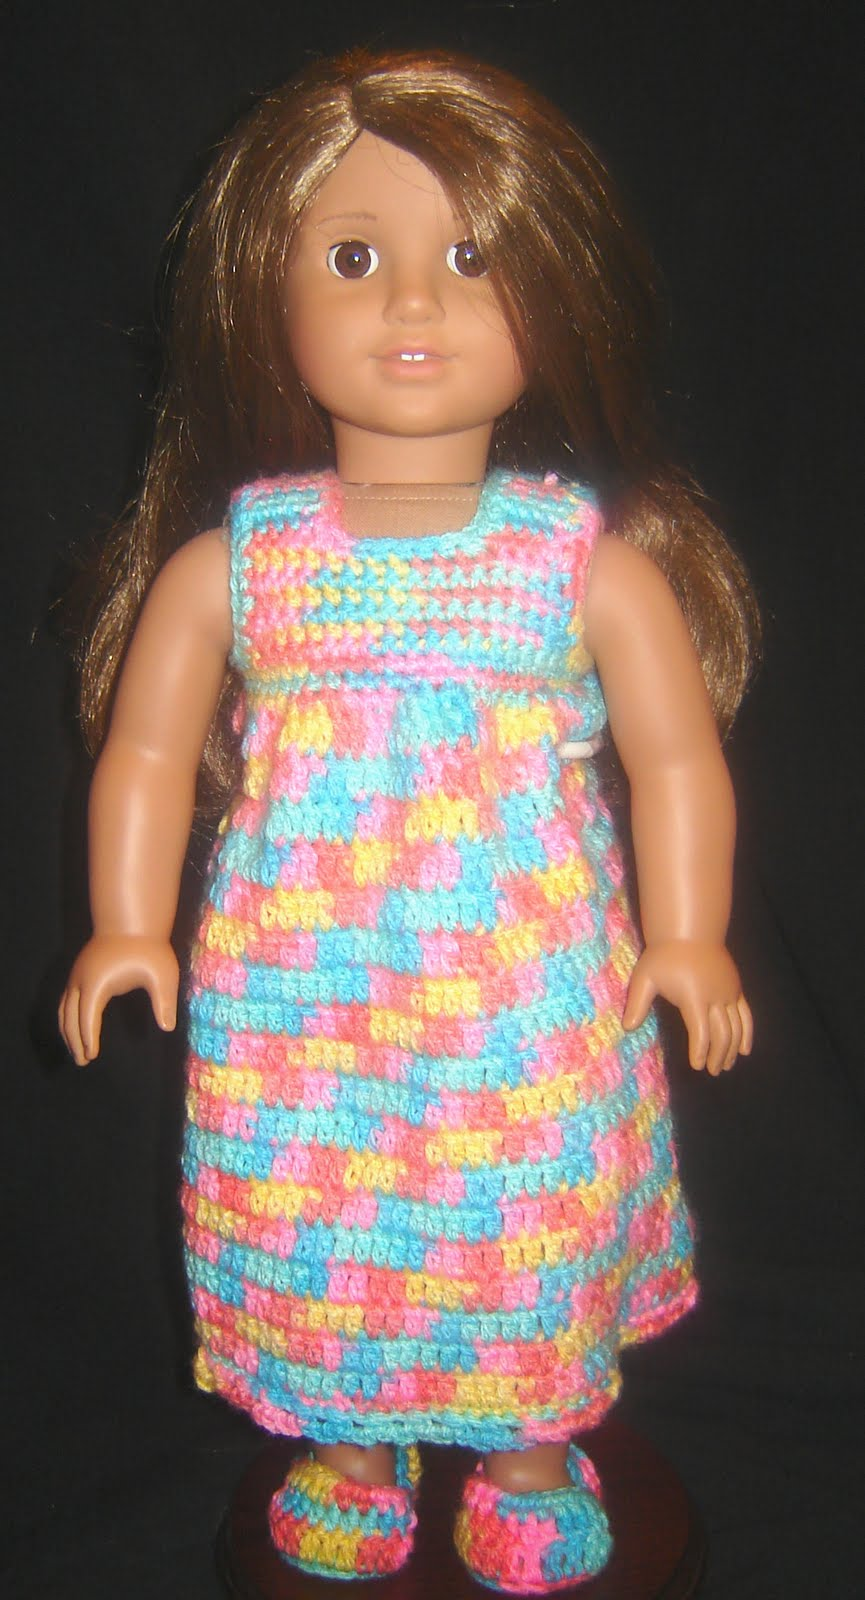 Bizzy crochet nightie robe amp slippers 18 quot doll clothes pattern